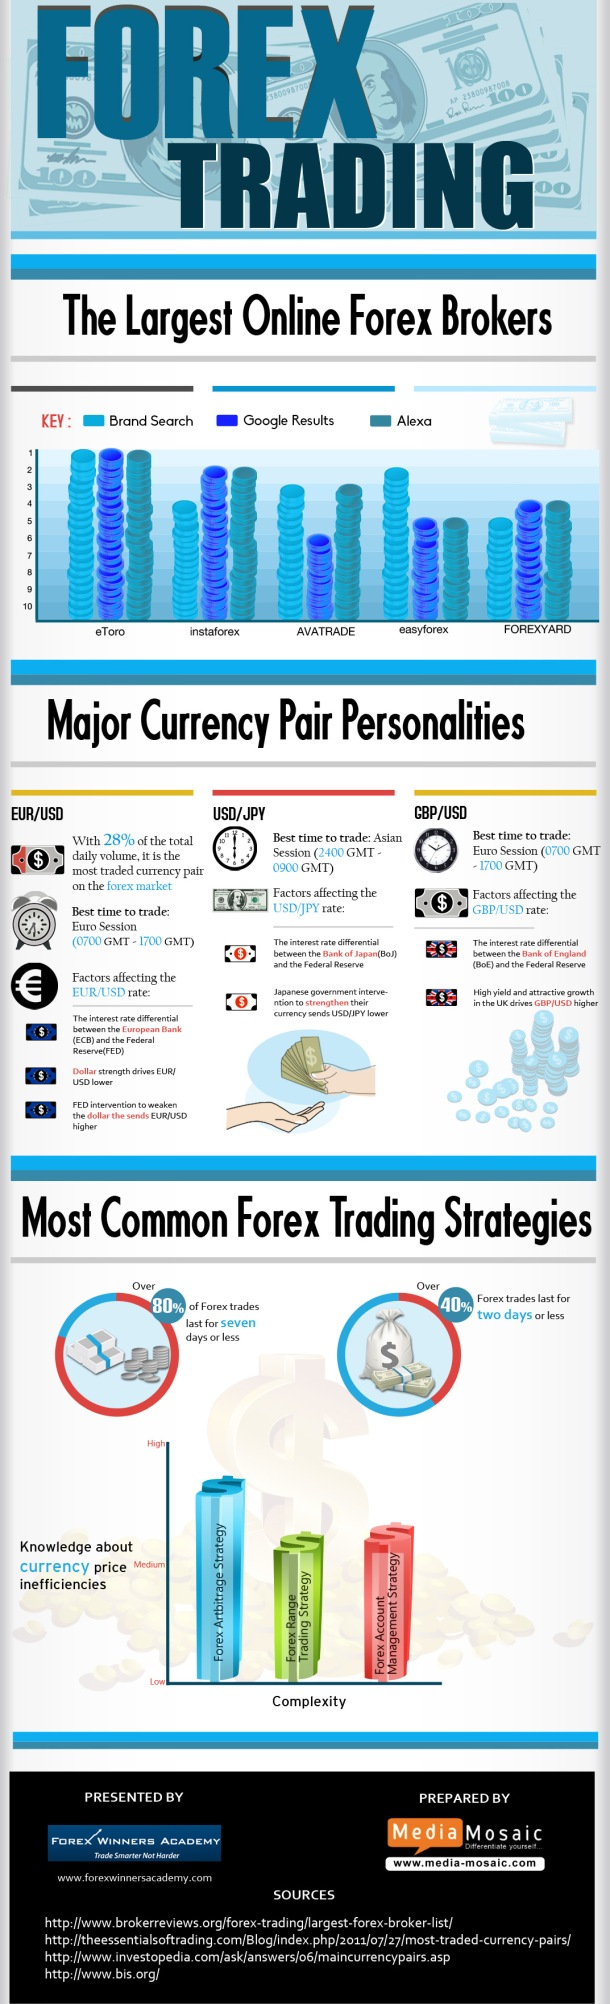 Forex Trading The Largest Online Forex Brokers